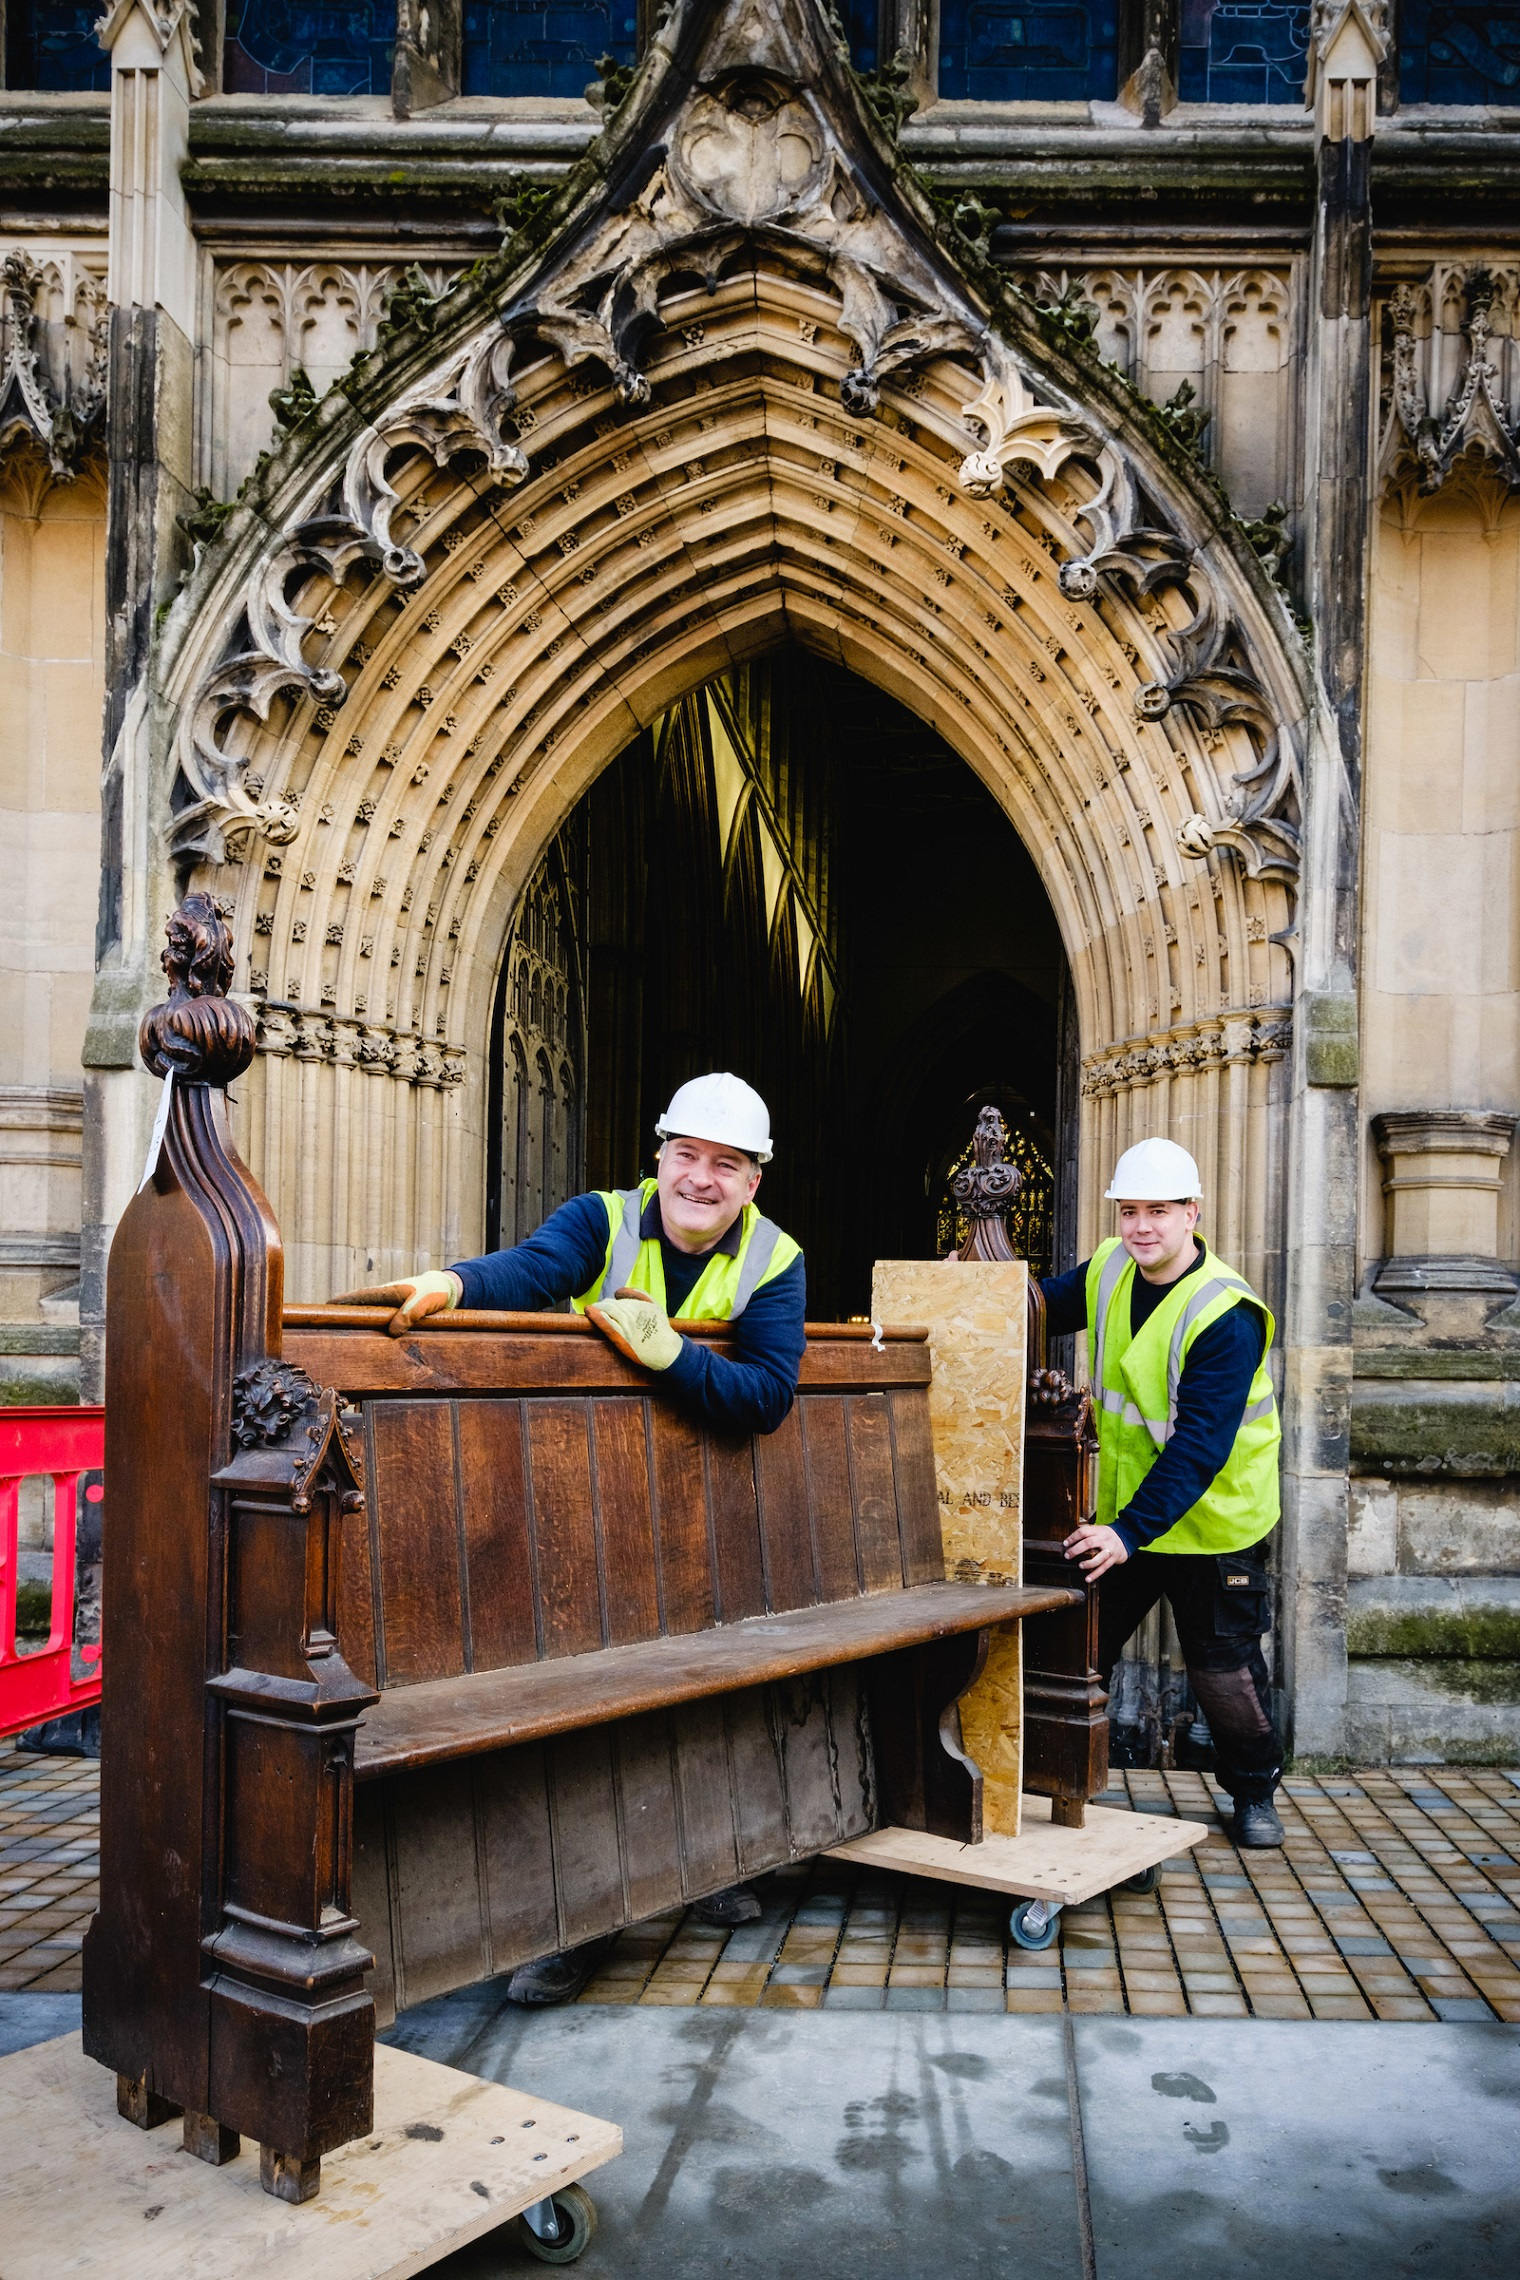 Wood carvers Andrew Martindale, left, and Andy Thompson are part of the specialist team charged with preserving the heritage of the Victorian pews at Holy Trinity Church.